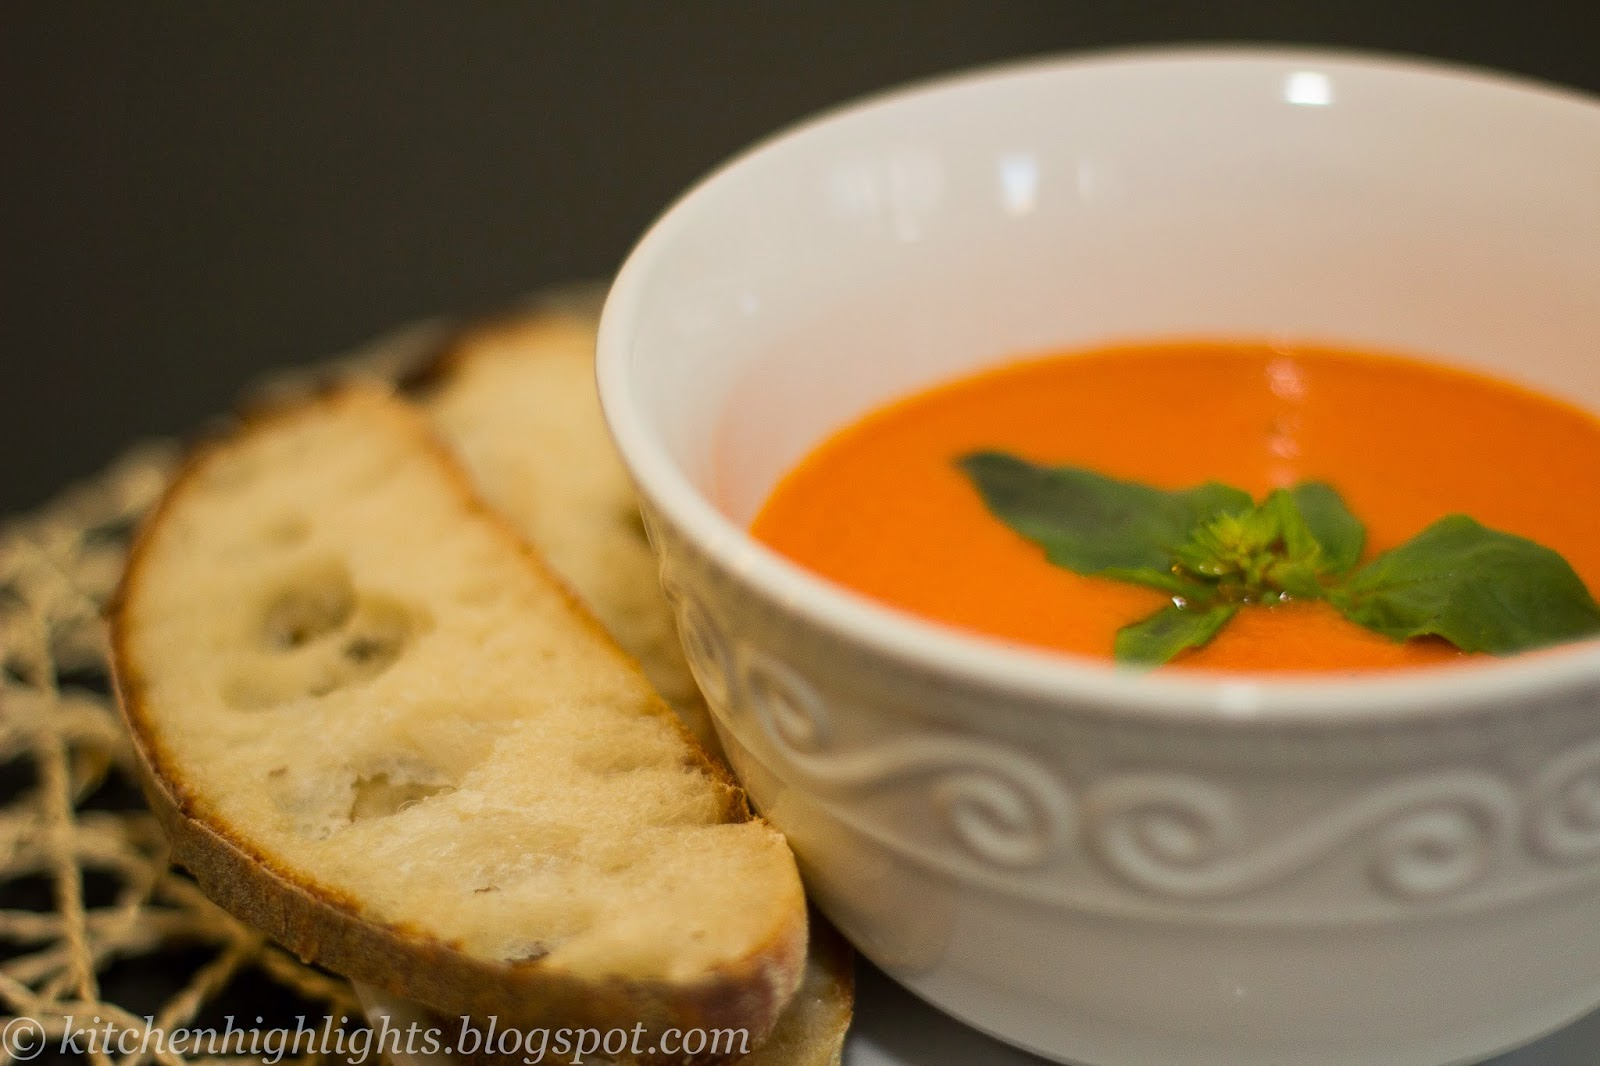 A simple but delicious homemade tomato soup is a wonderful spring time treat